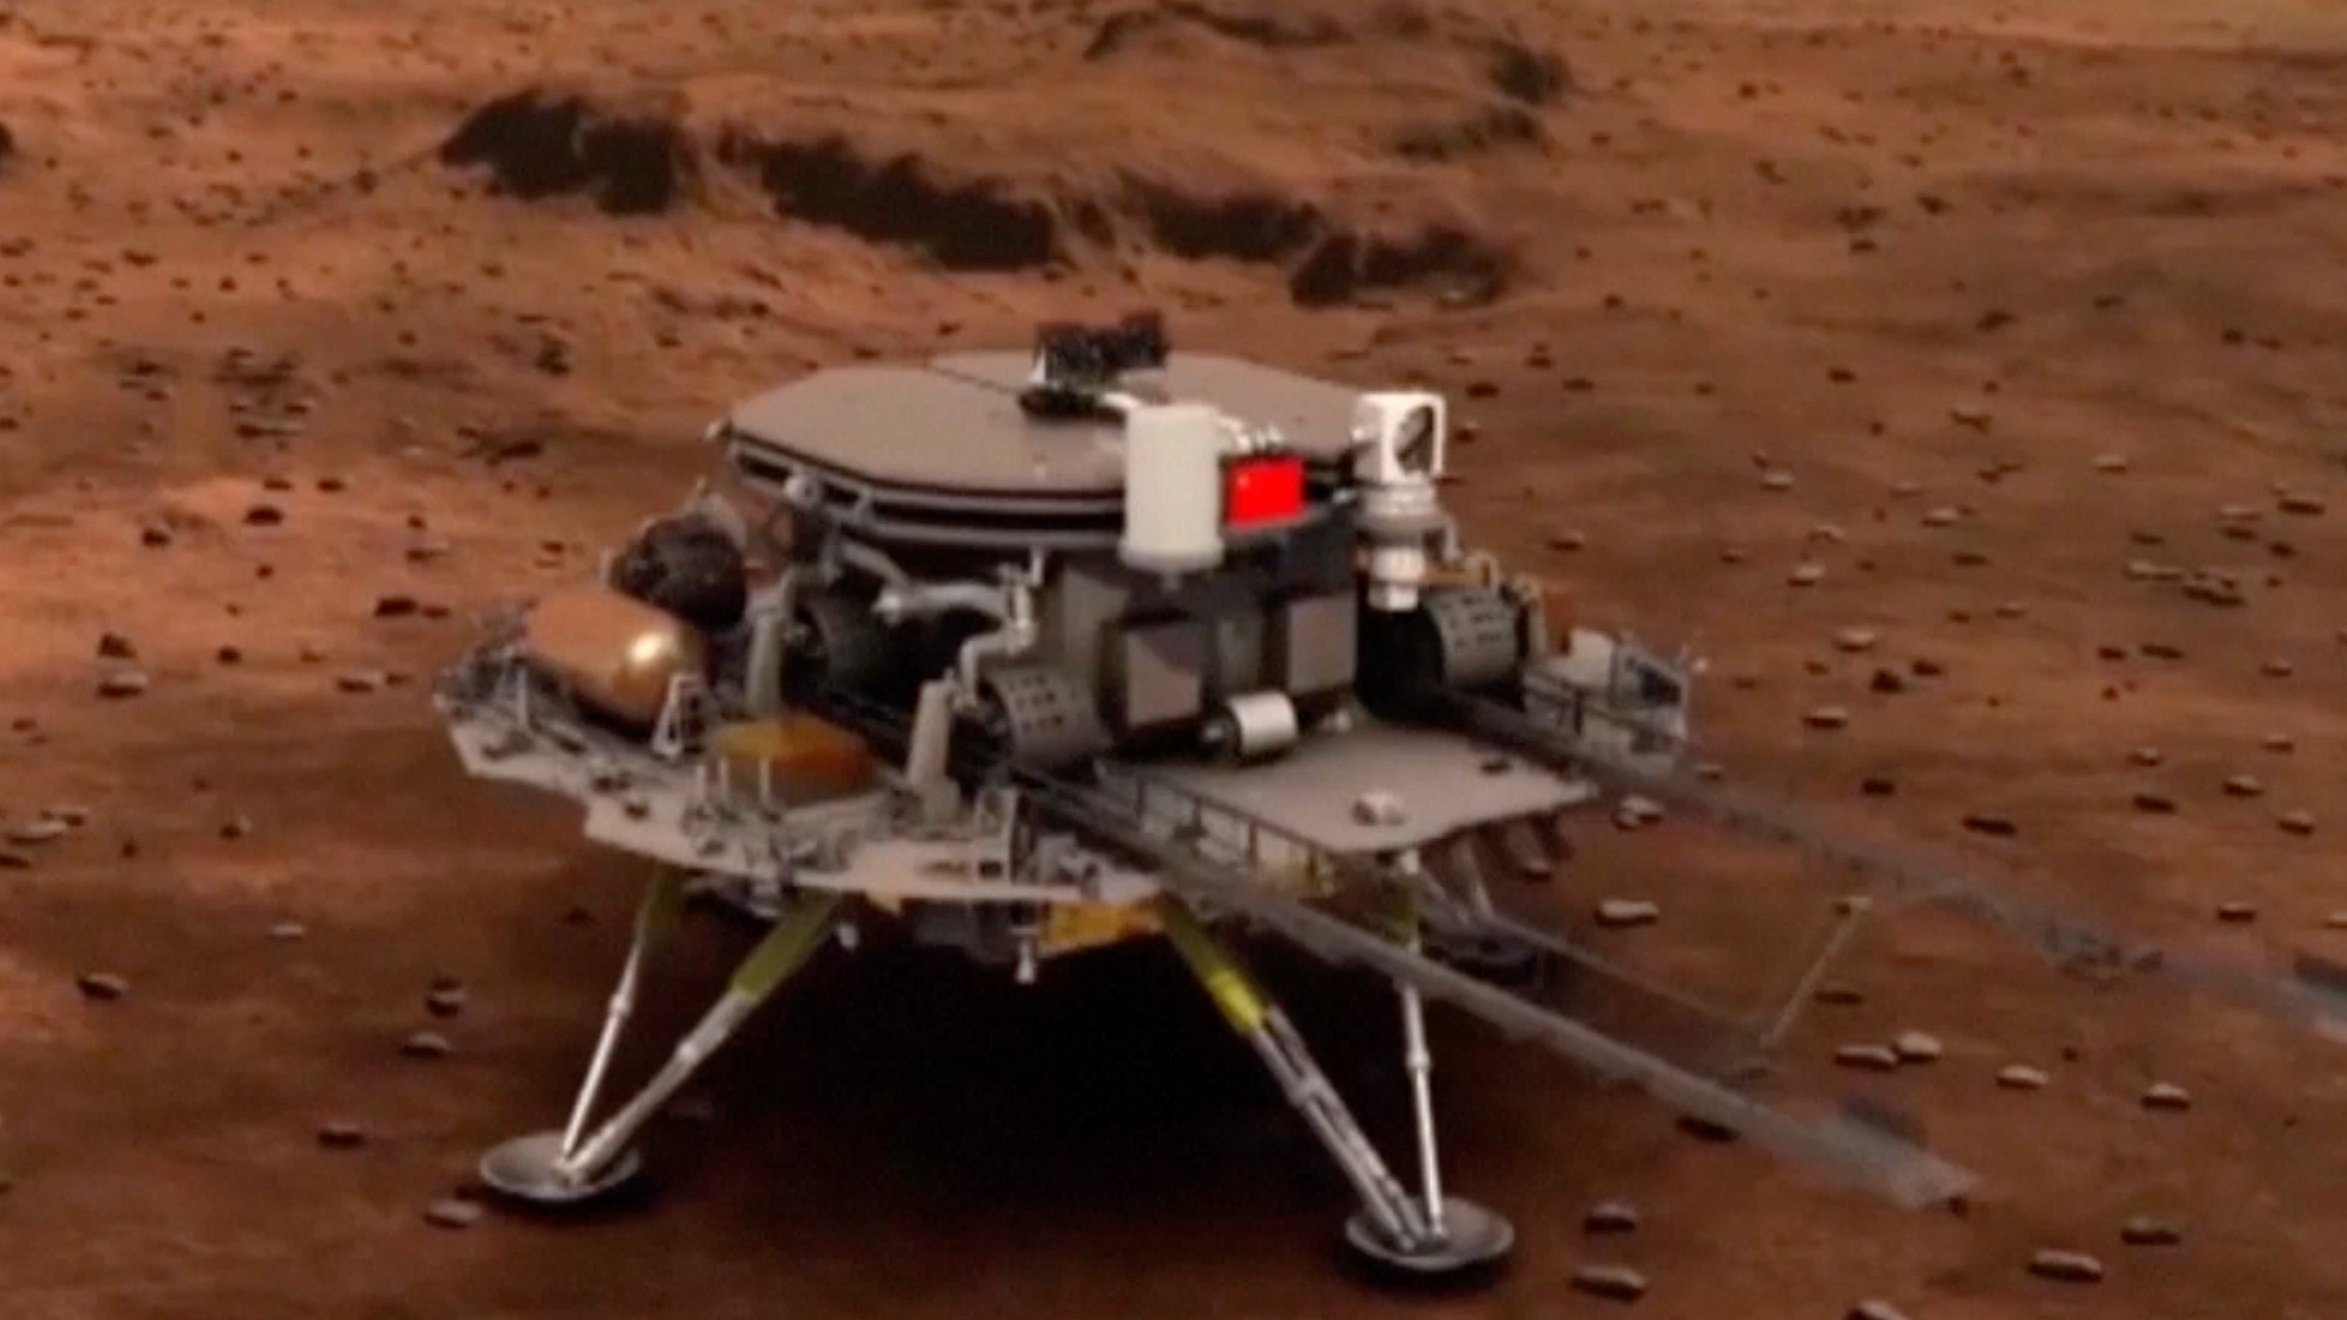 The China Mars mission the subject of how best to settle different planets